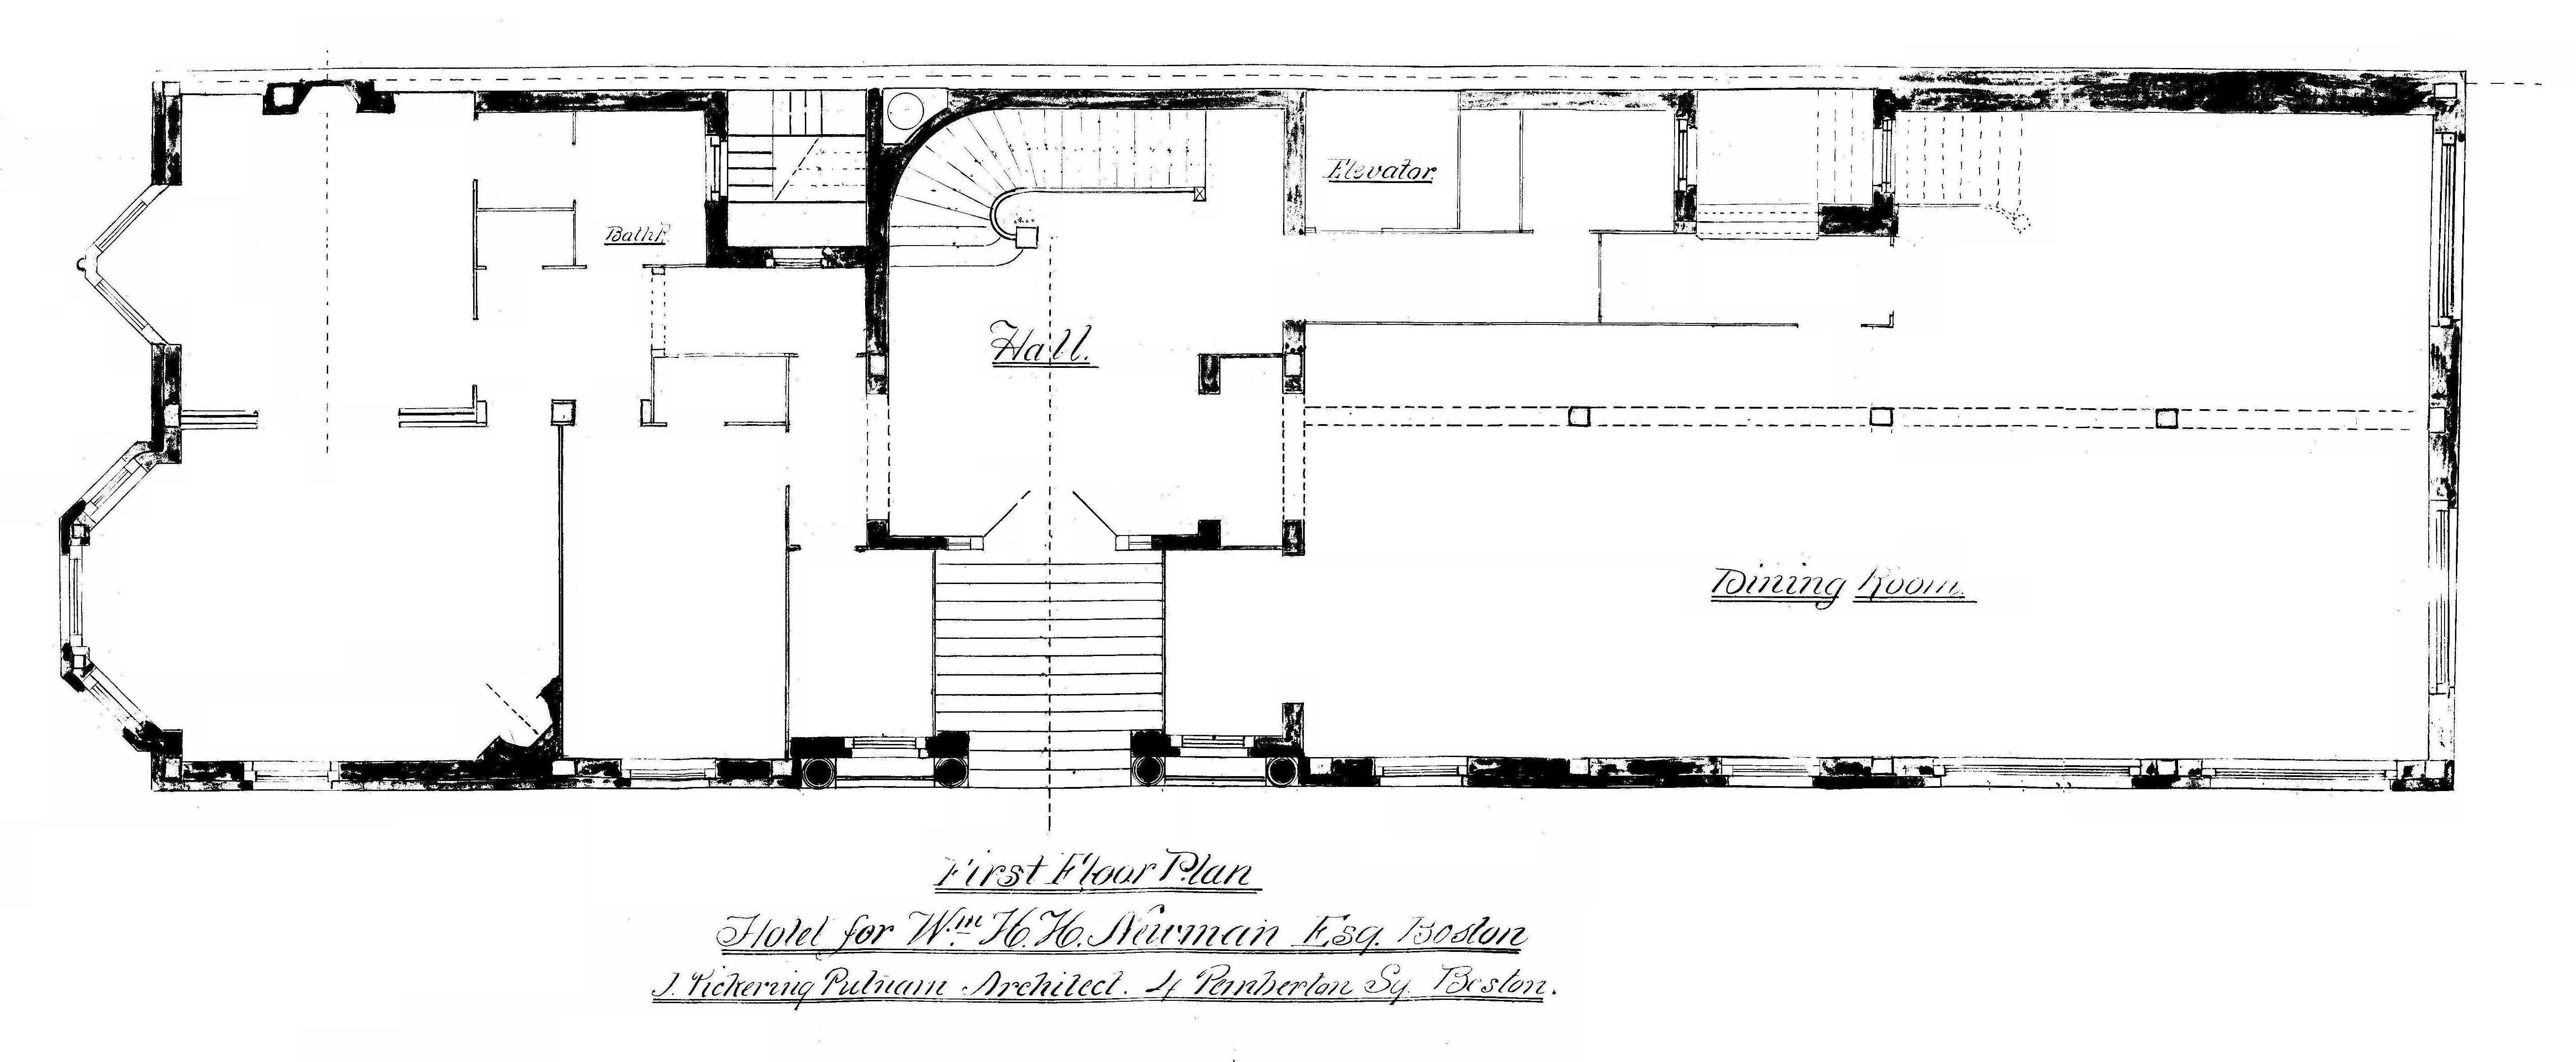 282 berkeley 29 commonwealth back bay houses first floor plan of 282 berkeley 29 commonwealth from original blueprints drawn by malvernweather Choice Image